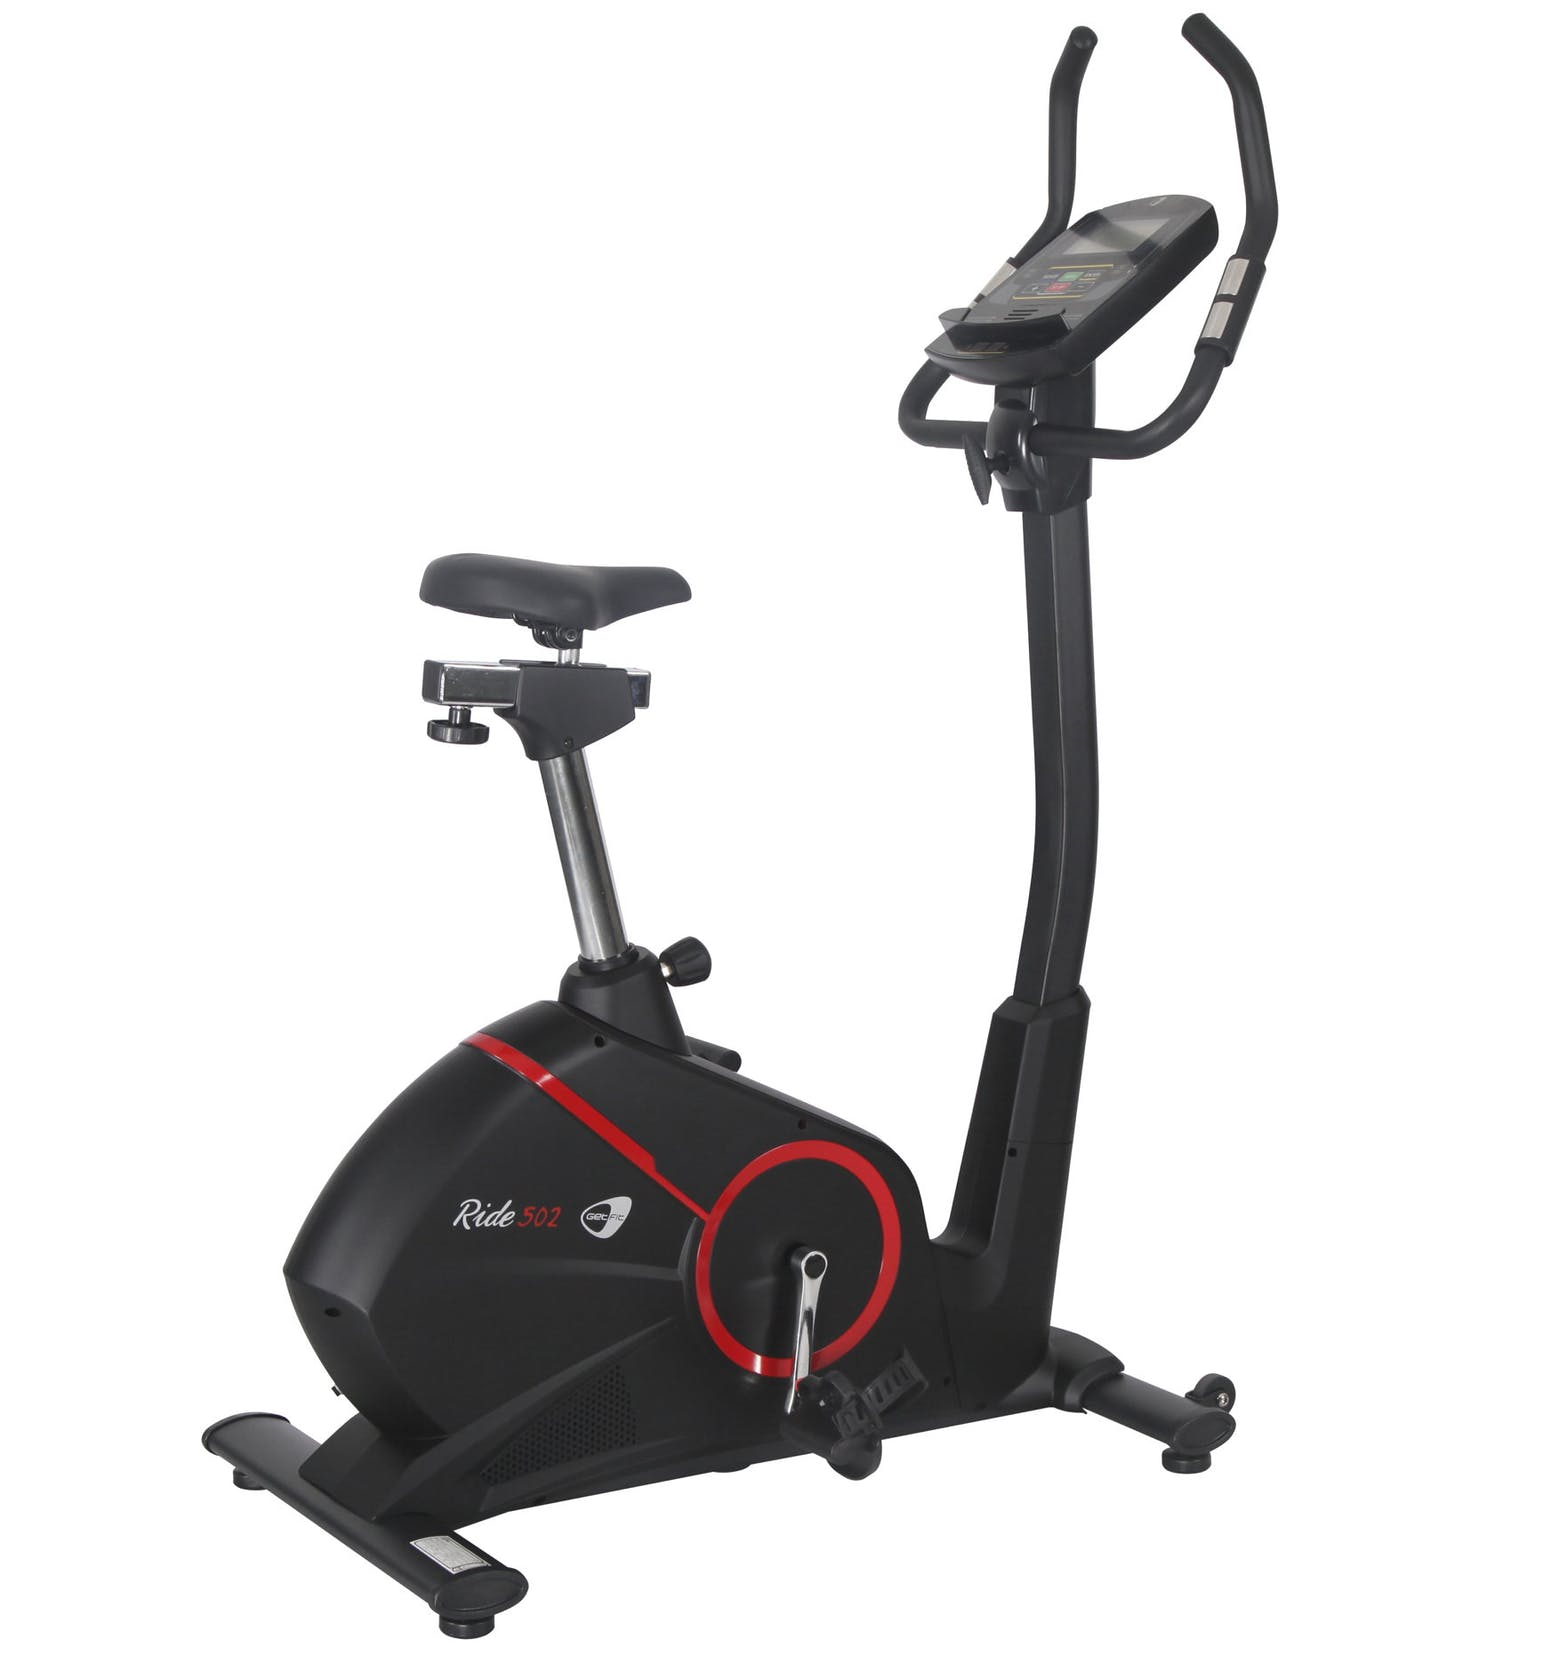 Get Fit Ride 502 - cyclette